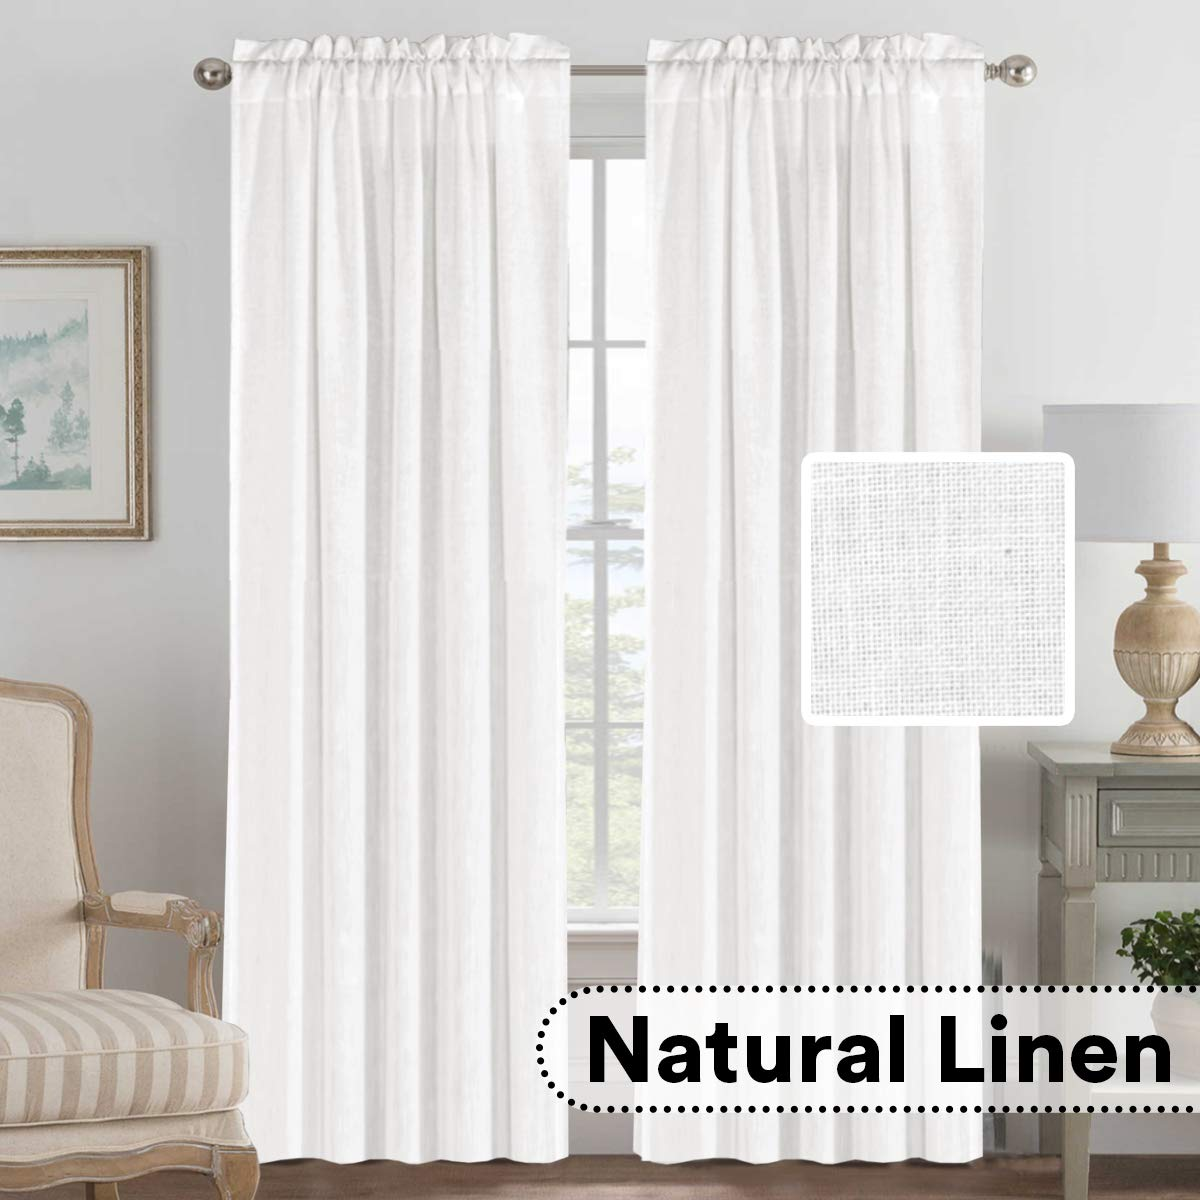 H.VERSAILTEX 52 - Inch Width by 96 - Inch Length Linen White Curtains Light Filtering Draperies for Living Room/Bedroom/Kids Room/Kitchen, Rod Pocket Window Panels -Set of 2, White by H.VERSAILTEX